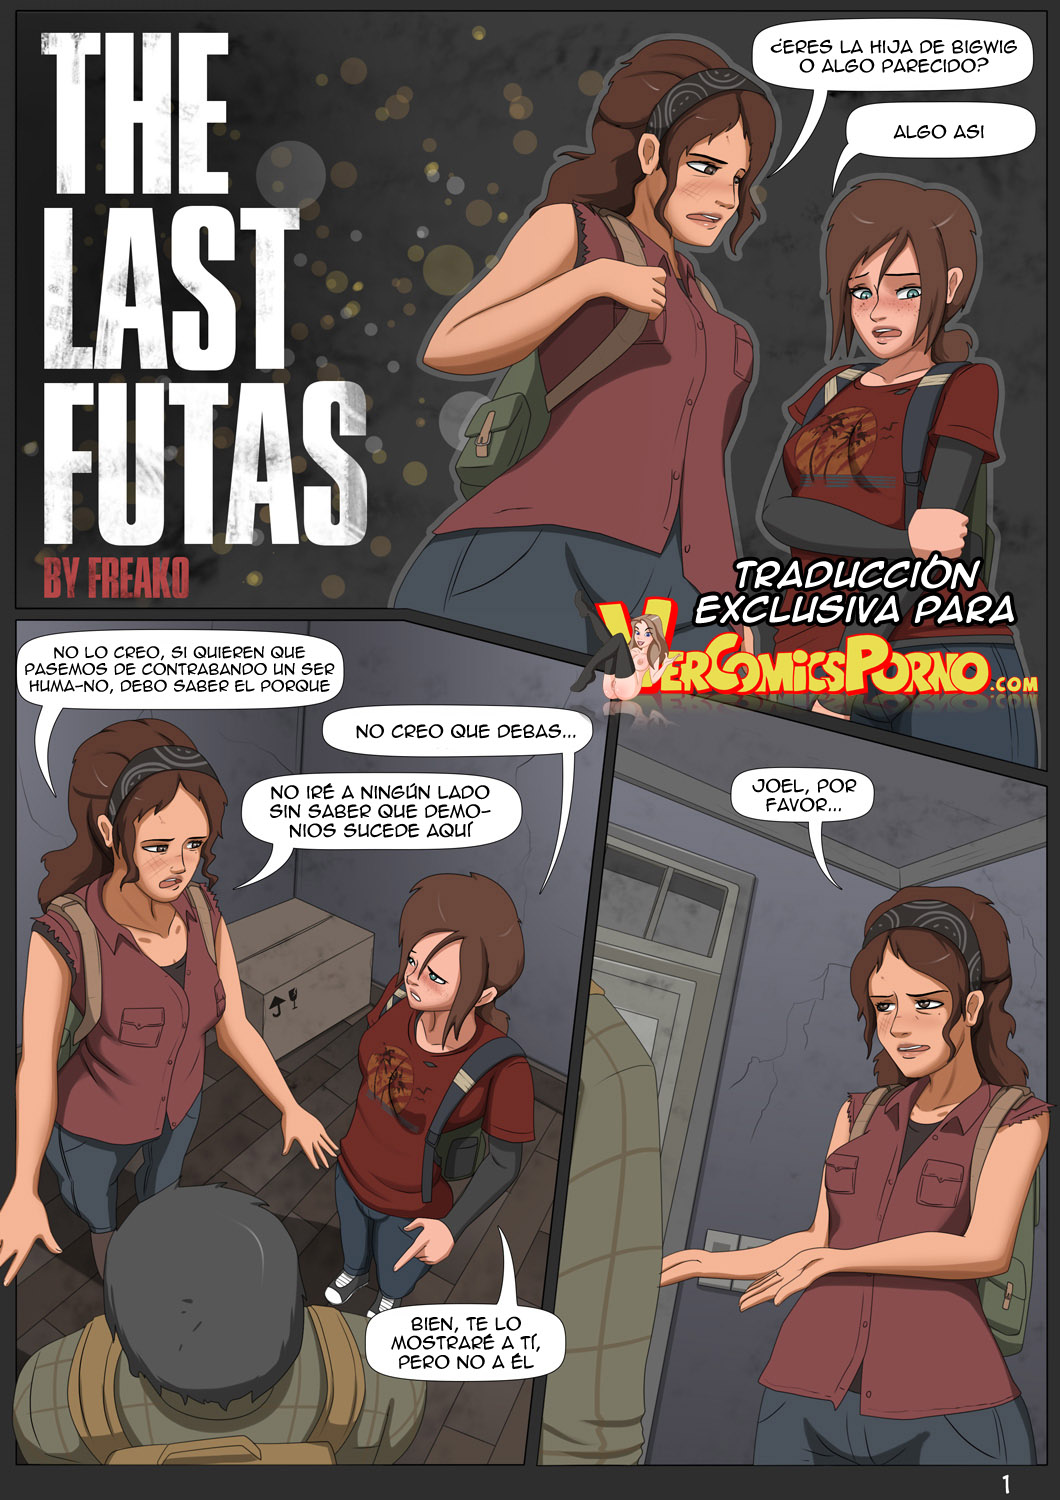 Free porn The Last Of Us galleries Page 1 - ImageFap